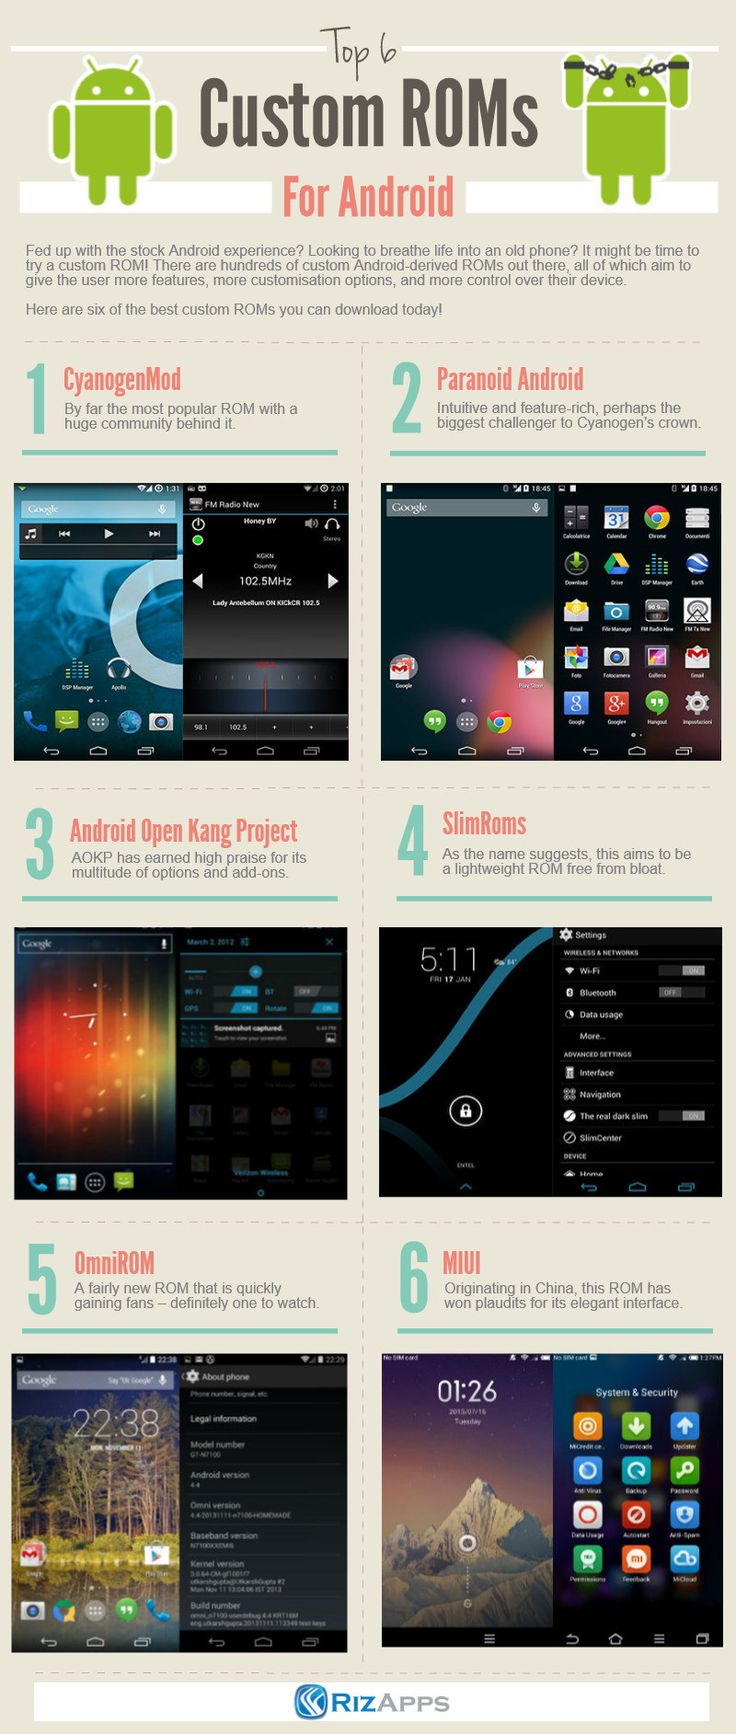 Top 6 Custom ROMs for Android   #infographic #Android #App